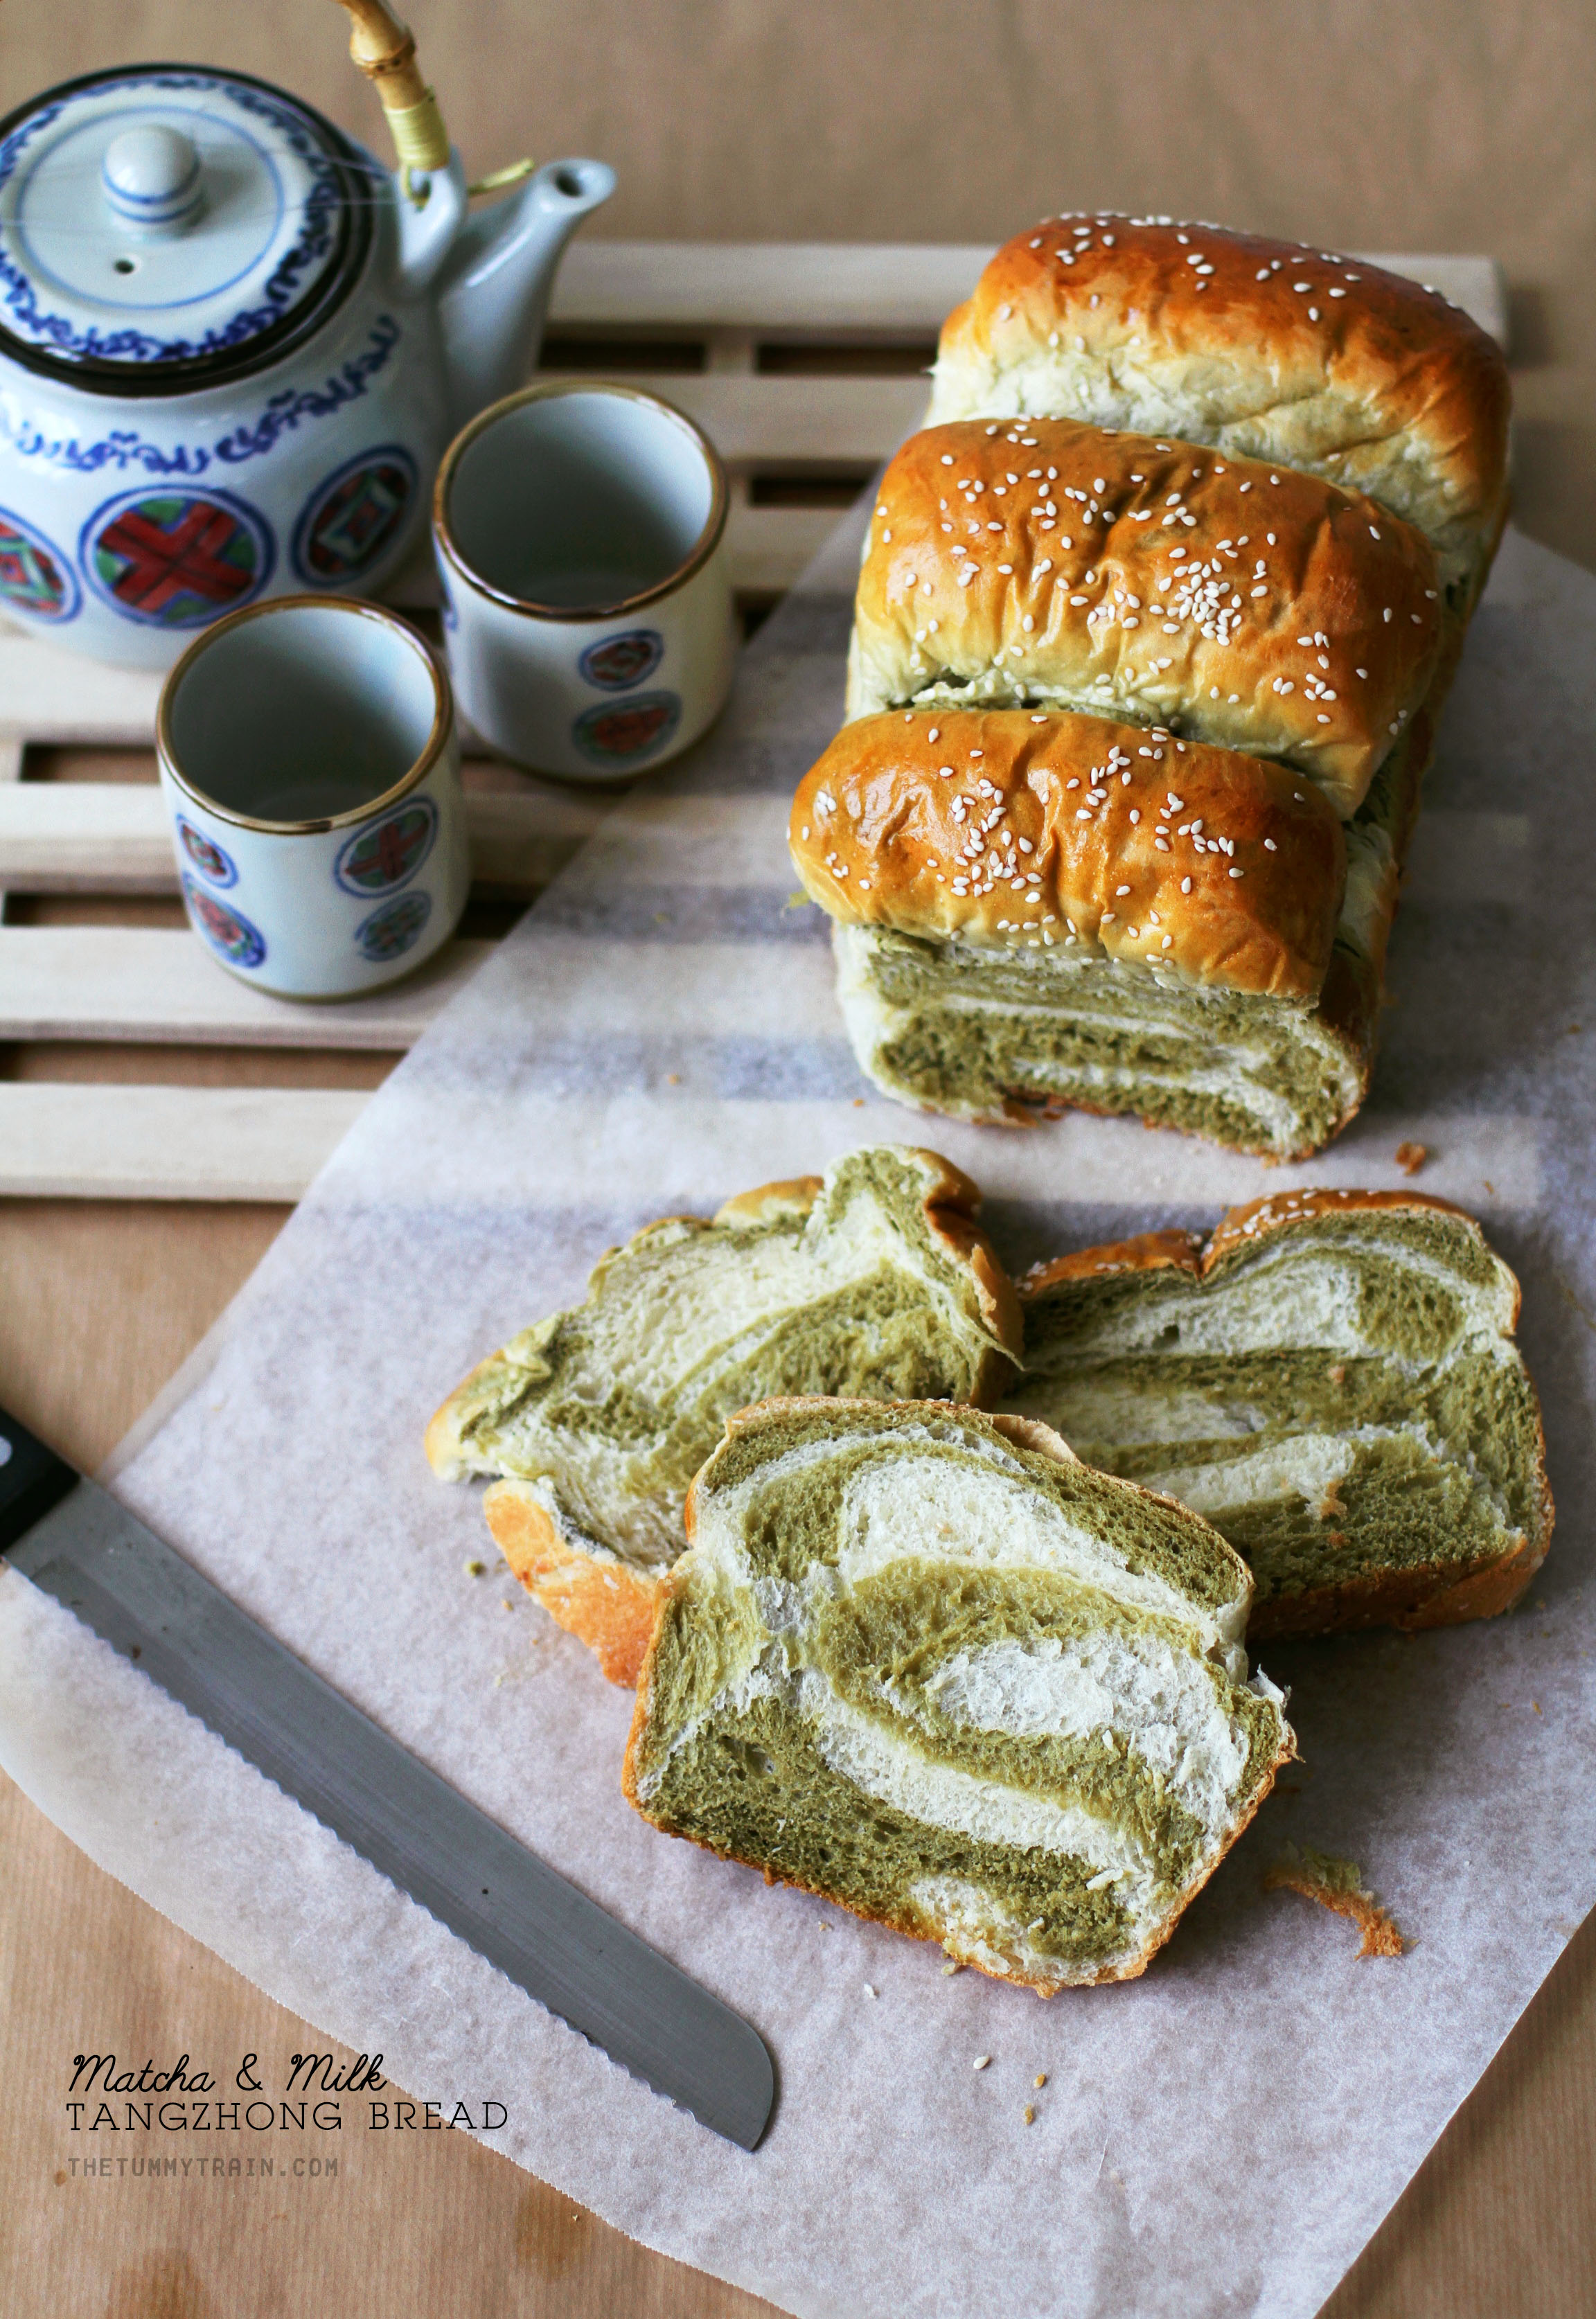 MM Bread 1 - The pleasures of making a Matcha-Milk Tangzhong Bread [VIDEO]